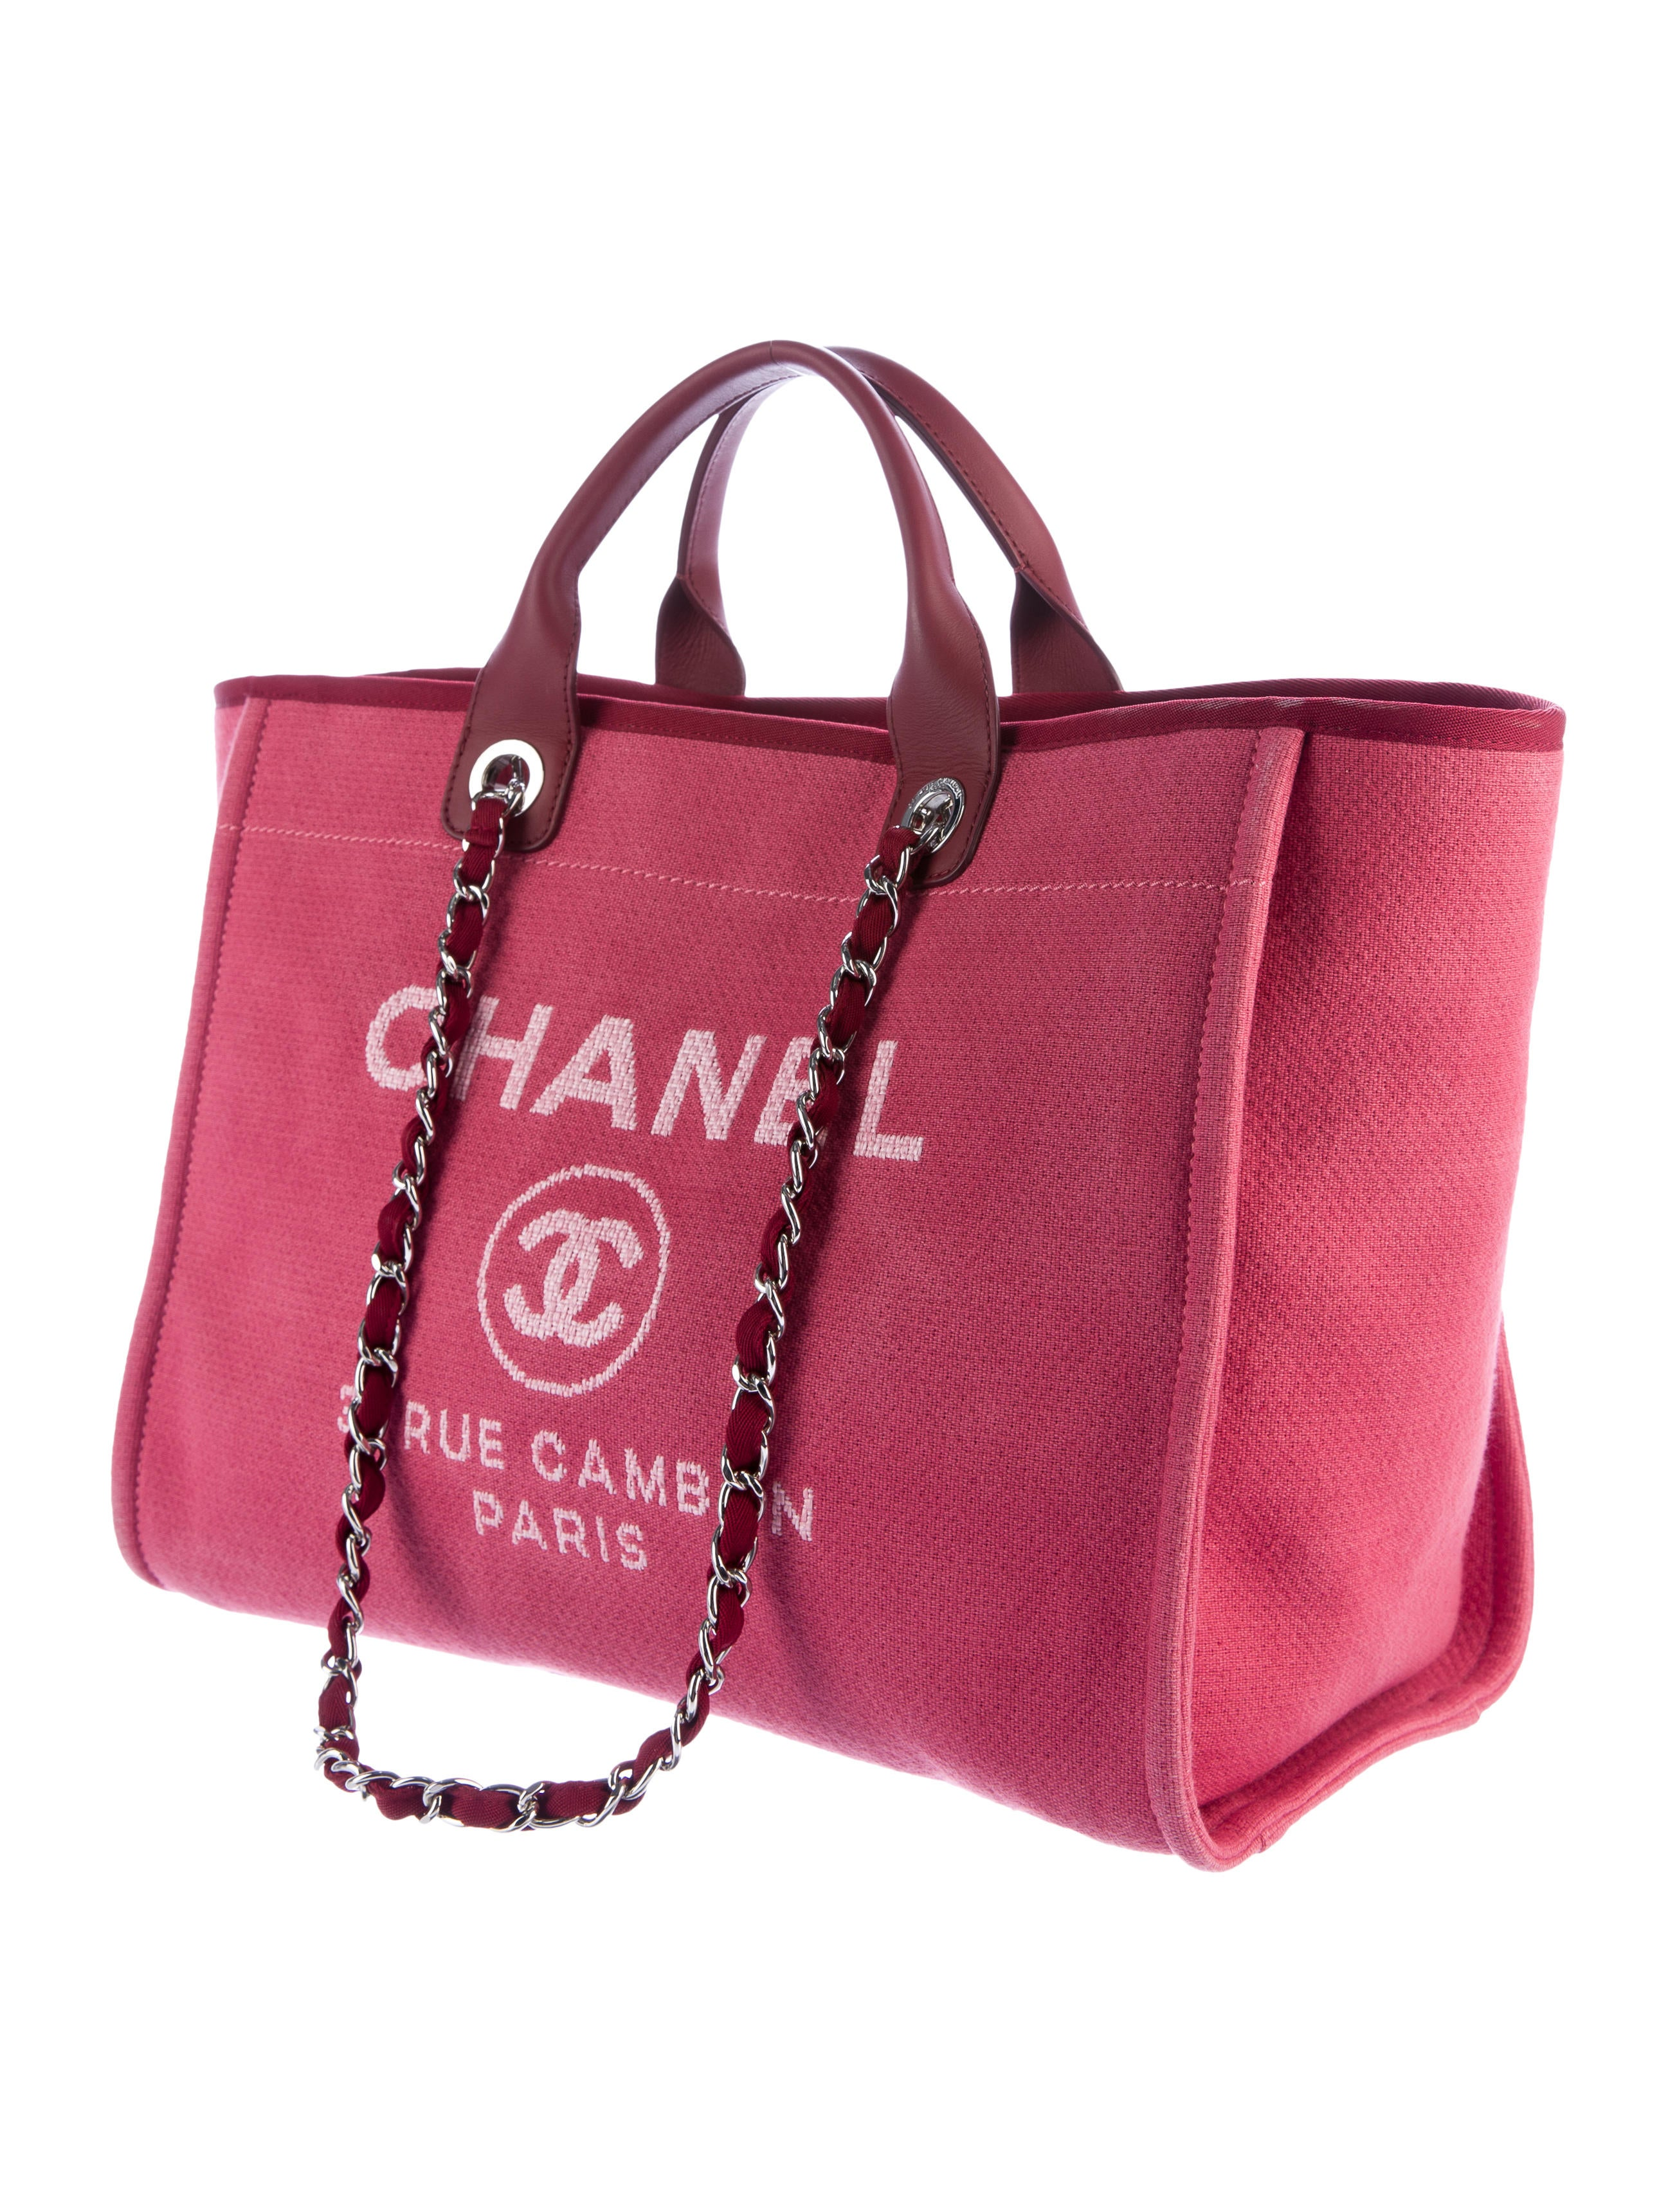 Chanel 2017 Large Deauville Shopping Bag